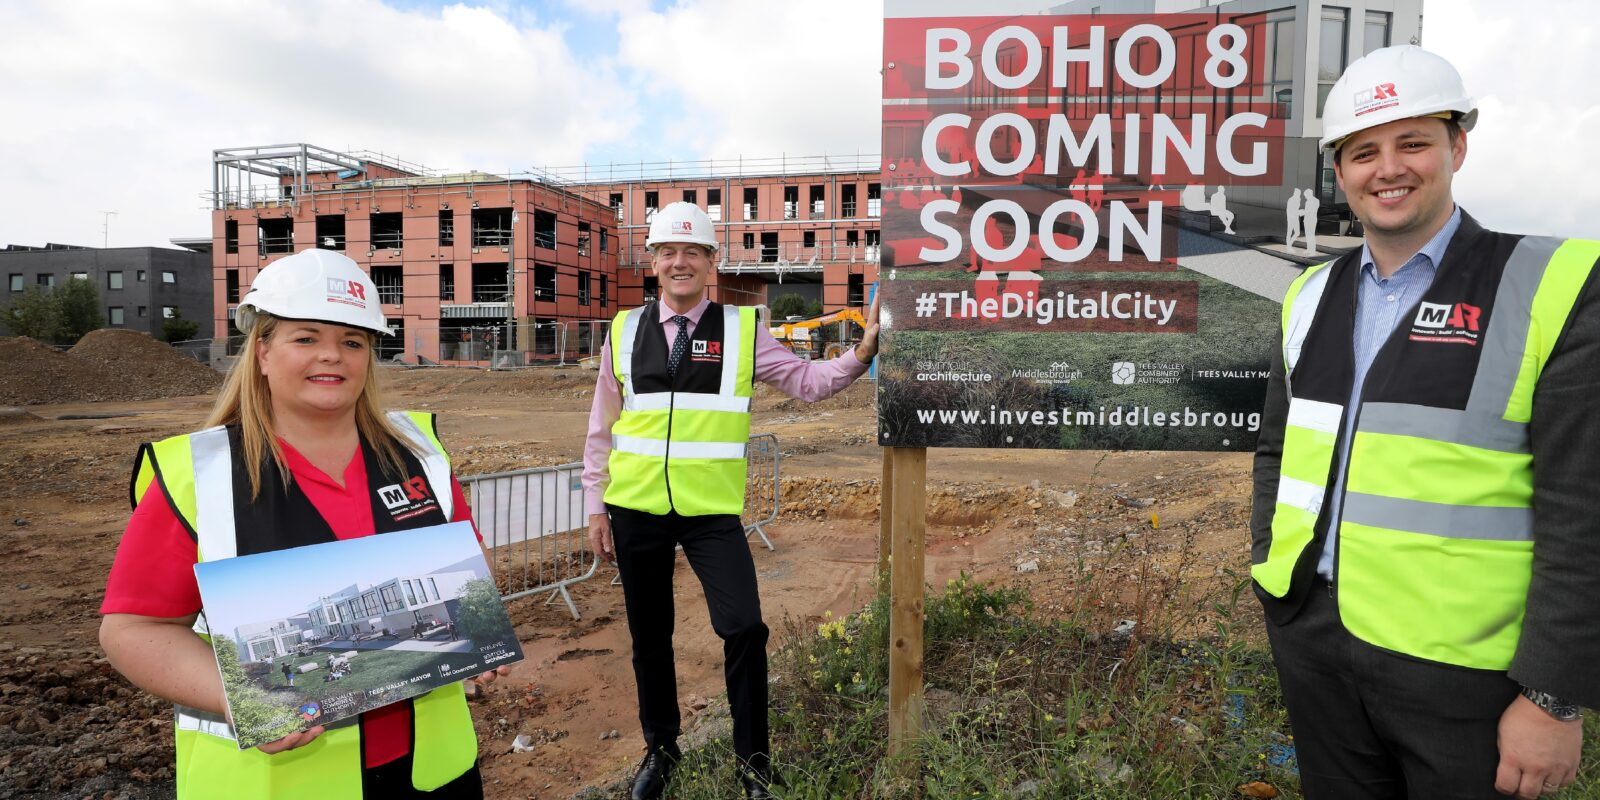 Developers on Boho 8 site and coming soon sign